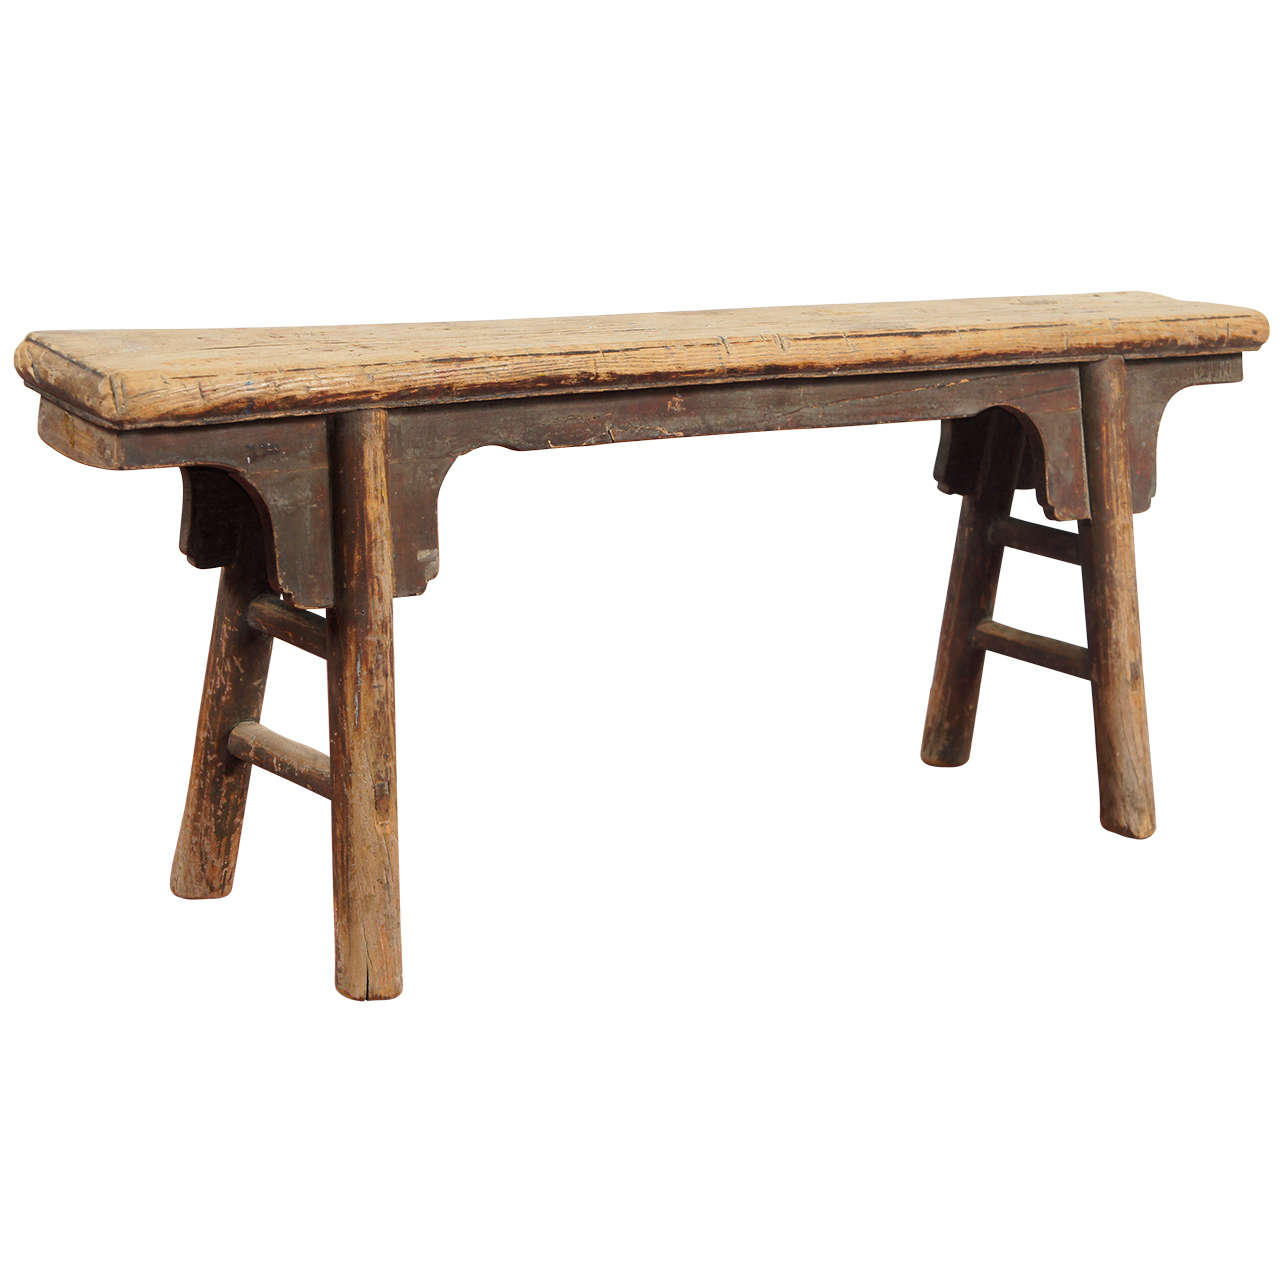 19th Century Primitive Chinese Wood Bench At 1stdibs